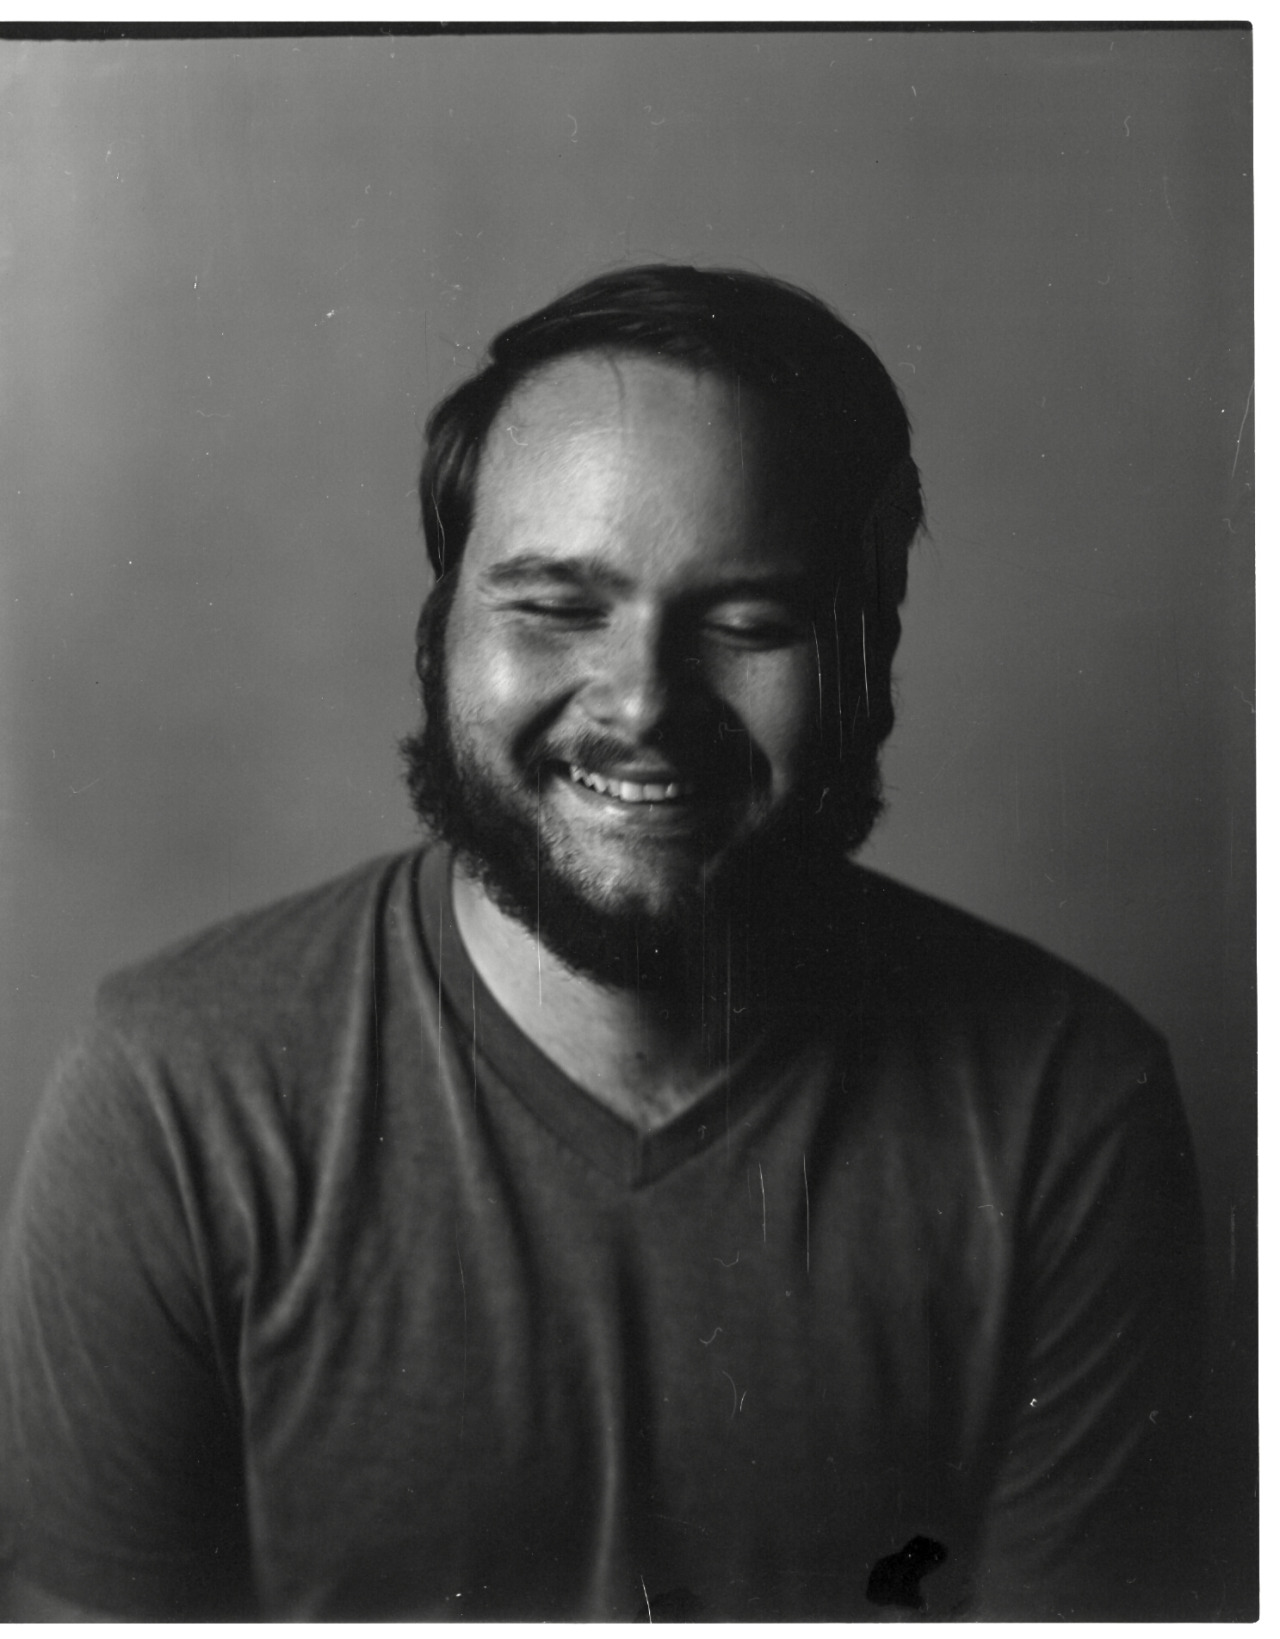 Nathan Kane  |  4x5   I love all the scratches in this image, and Nathan's smile.